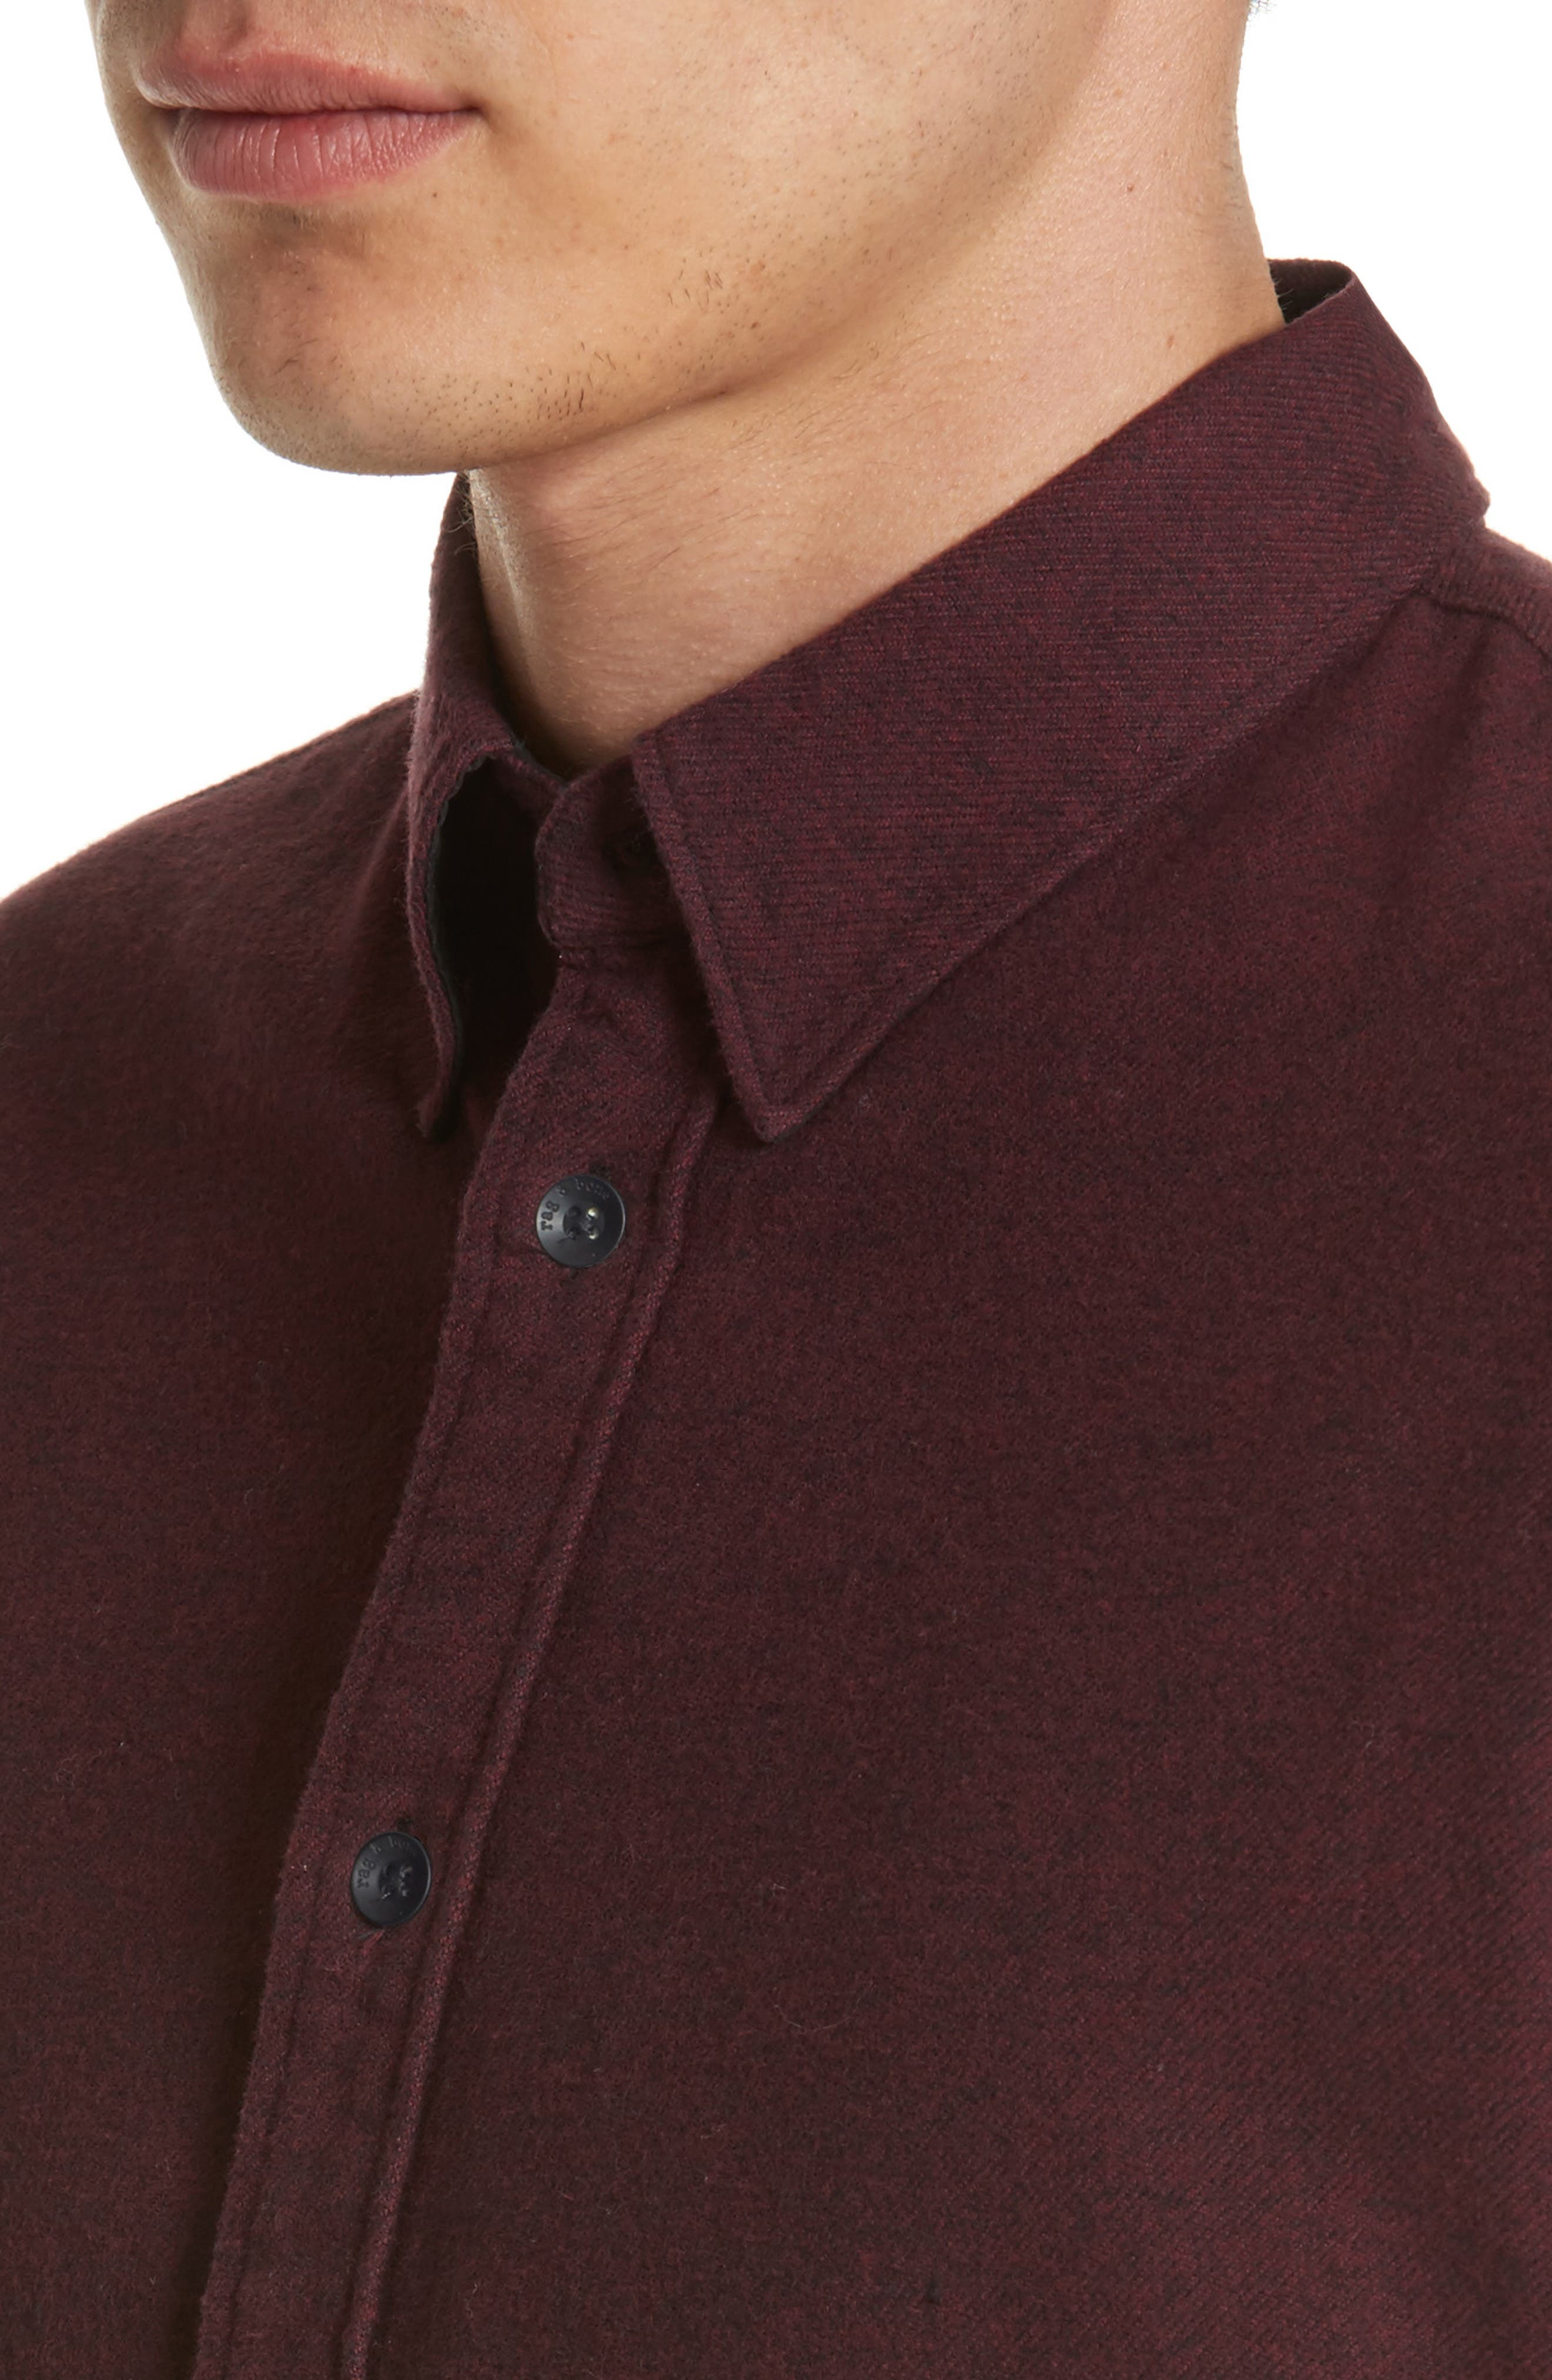 Fit 2 Base Woven Shirt,                             Alternate thumbnail 4, color,                             Burgundy